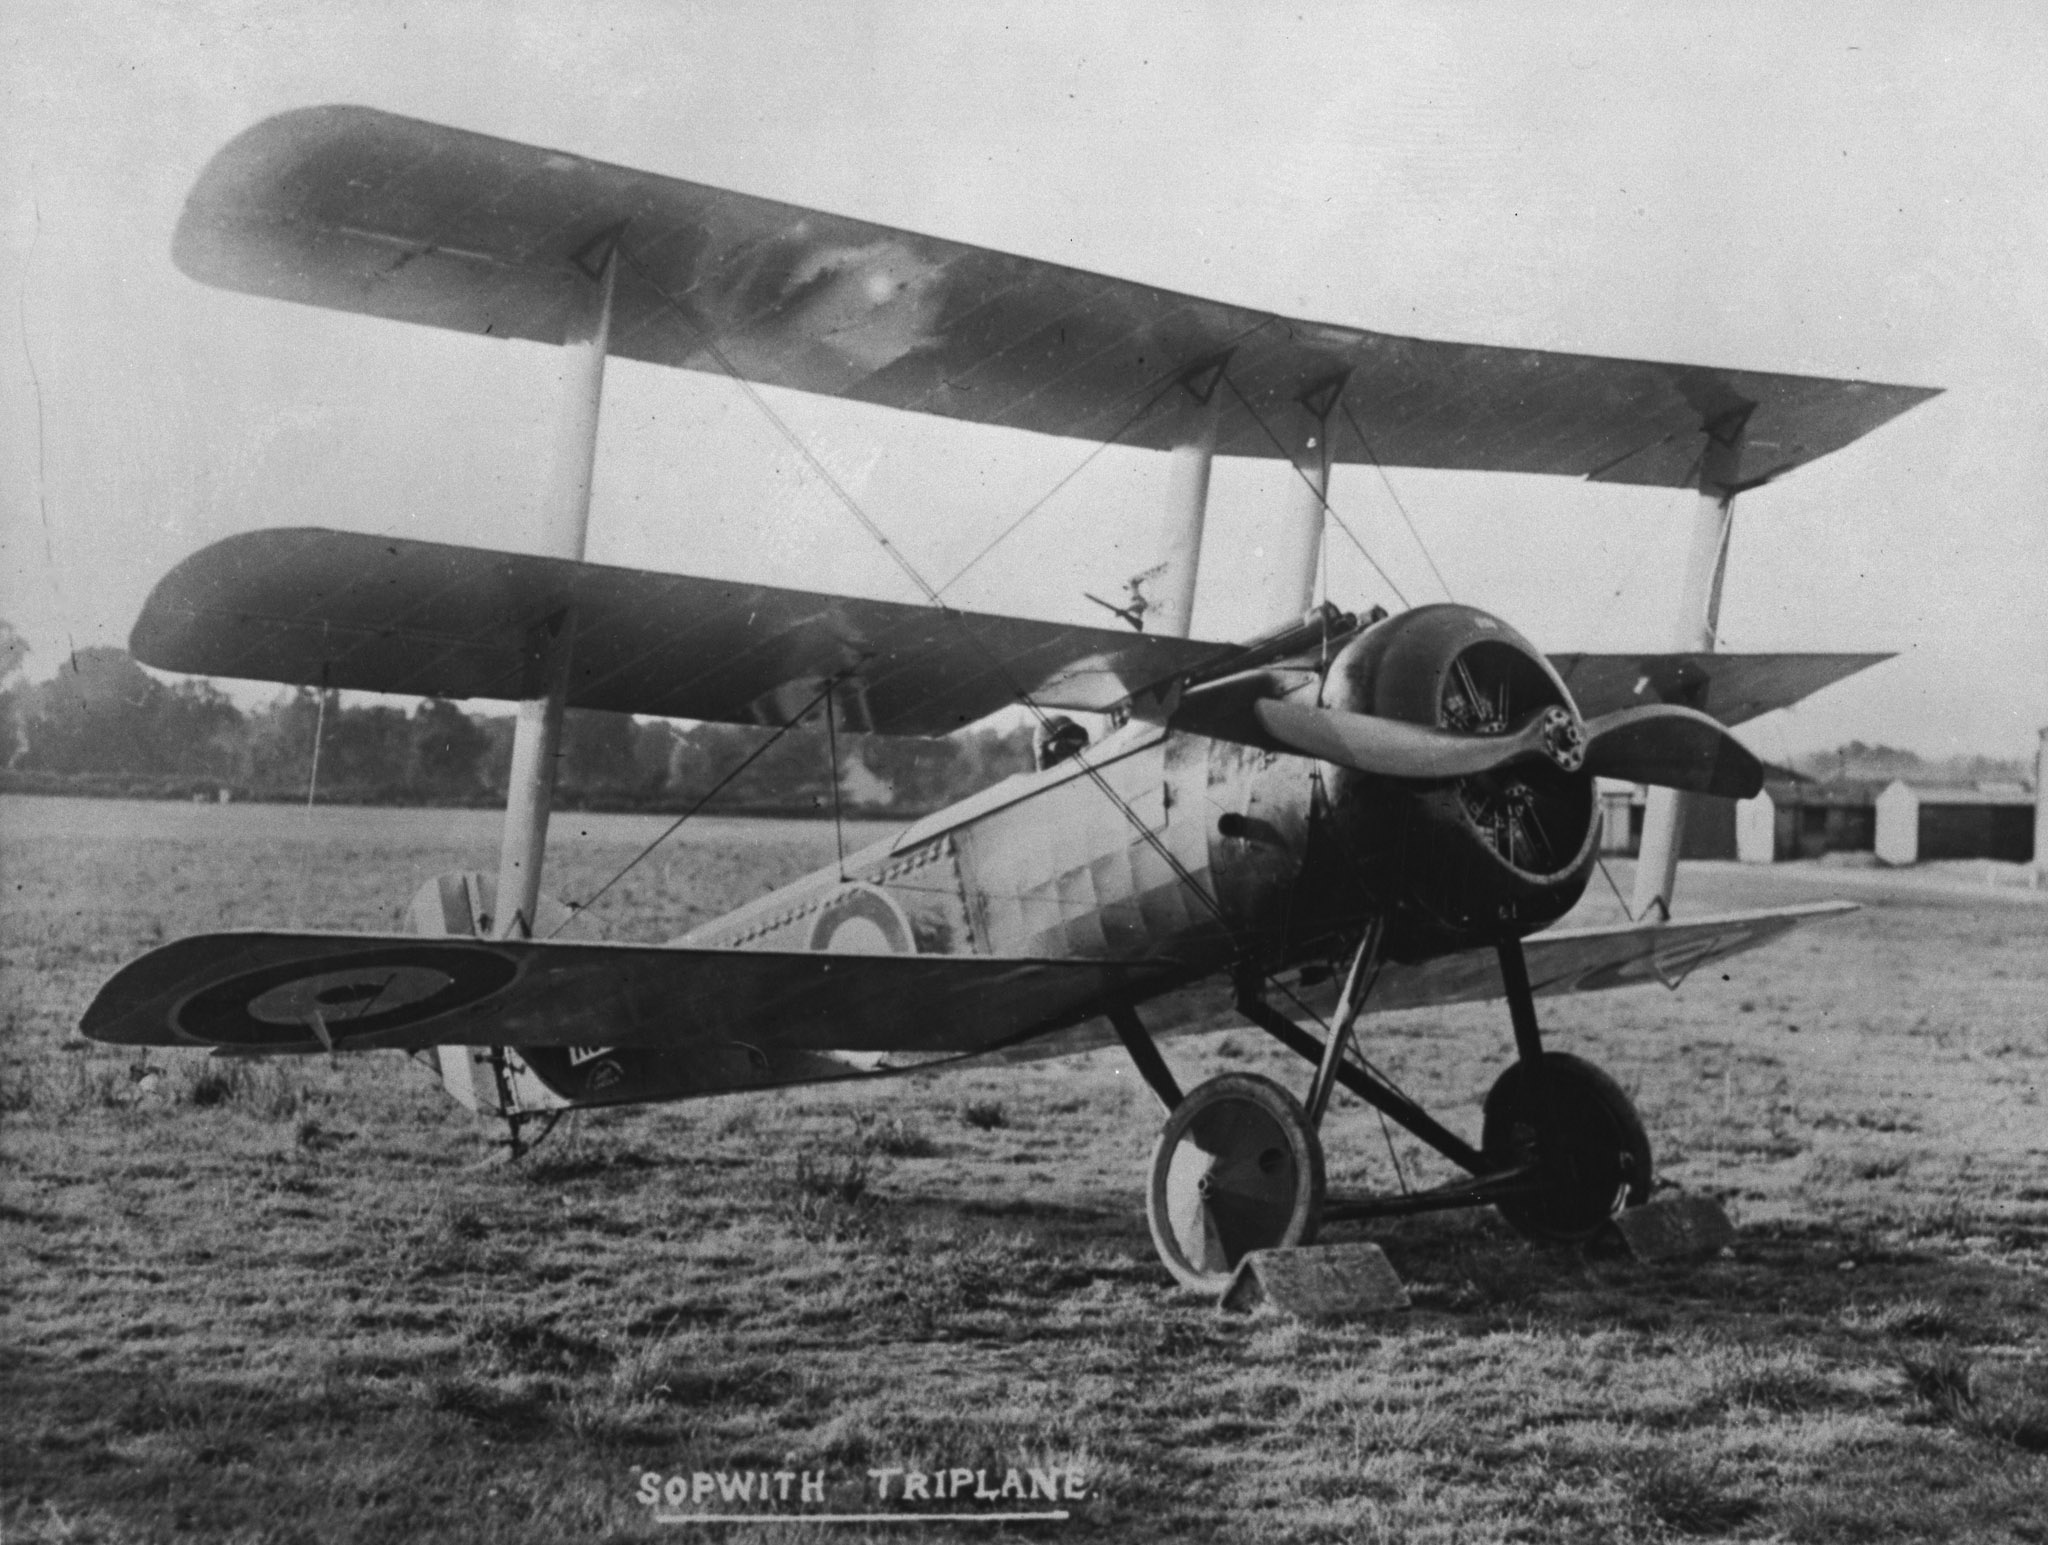 A Sopwith triplane. Numbers 1, 8 and 10 Squadrons of the Royal Naval Air Service, operating Sopwith triplanes, were temporarily placed at the disposal of the Royal Flying Corps in the lead-up to the Battle of Vimy Ridge. PHOTO: DND Archives, AH-493